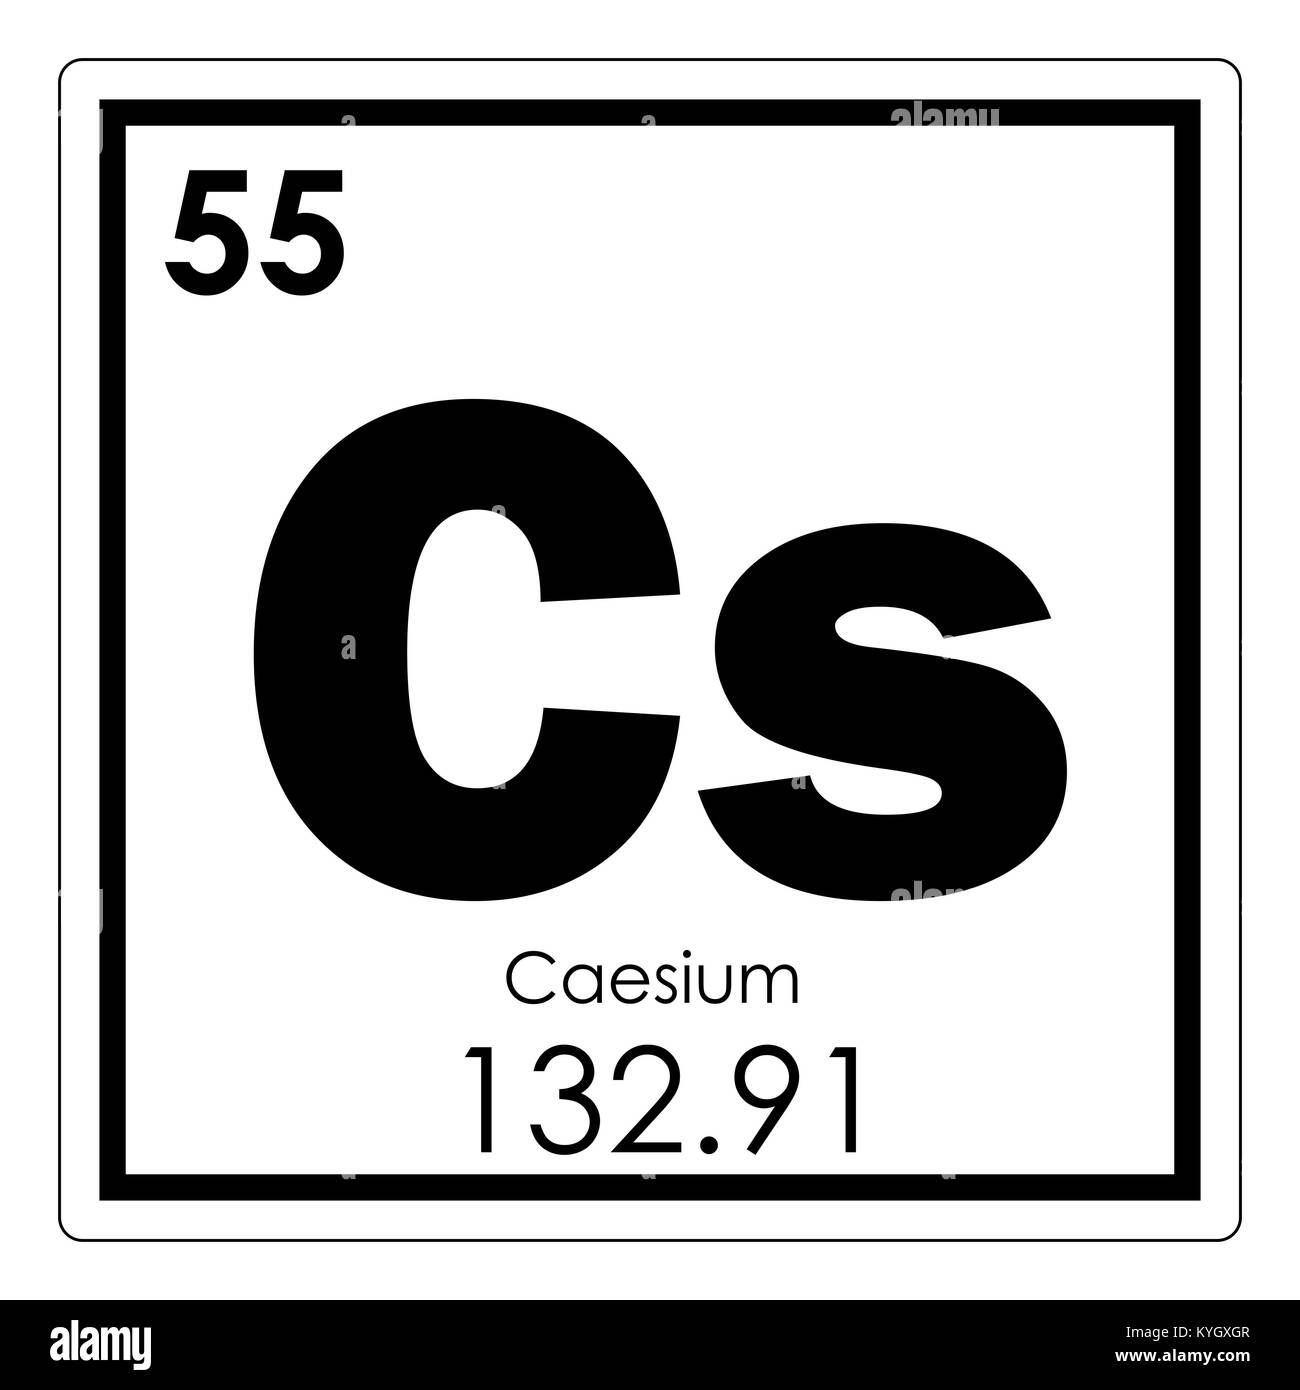 Caesium Stock Photos & Caesium Stock Images